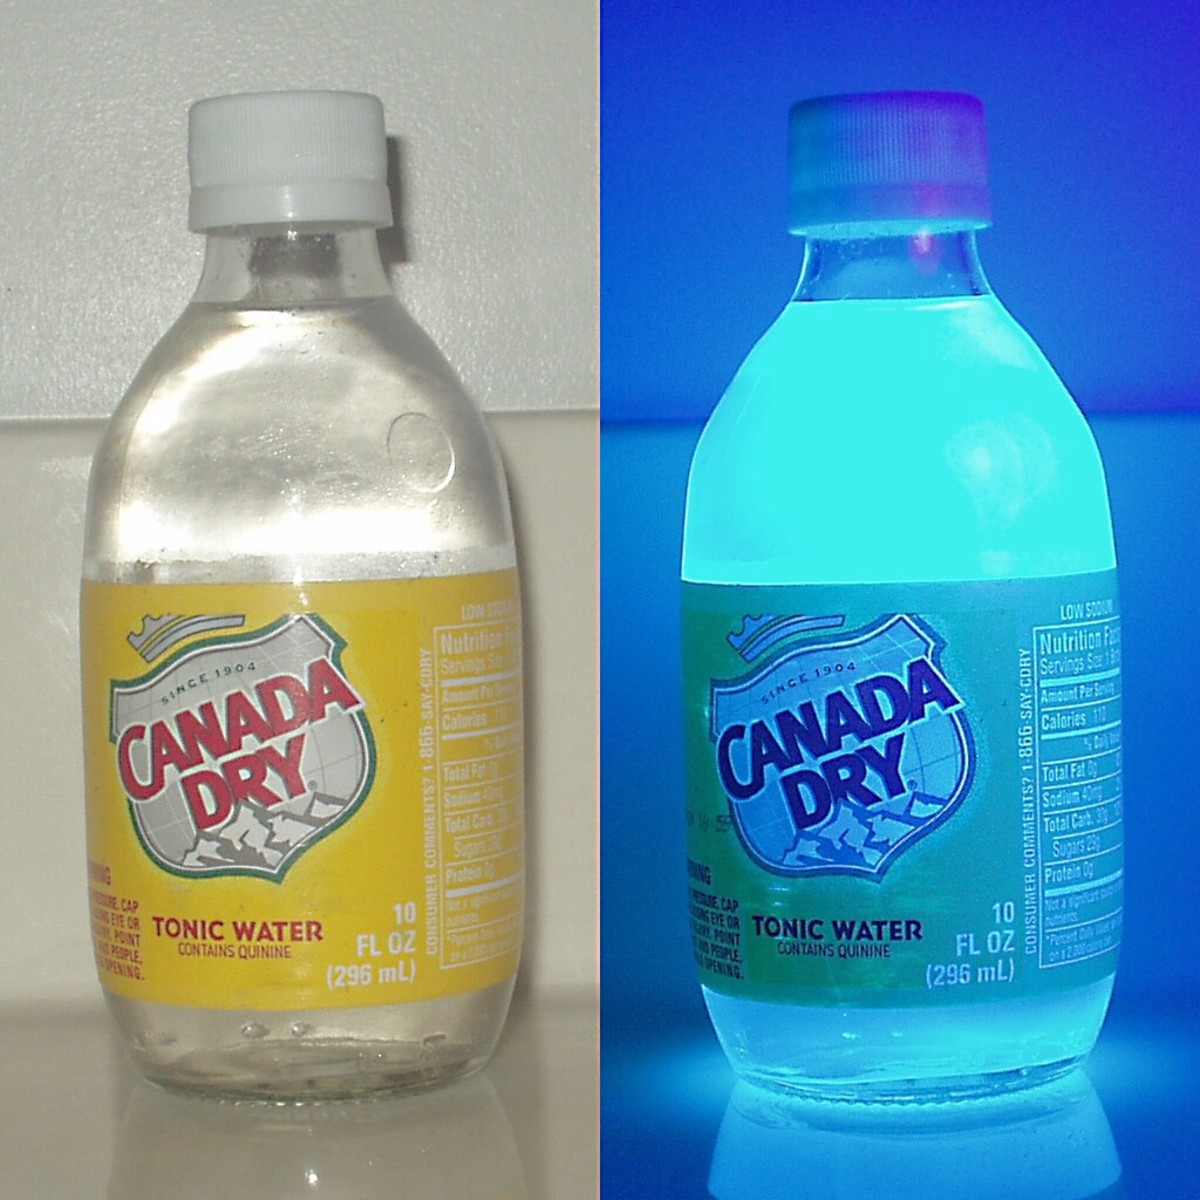 Tonic water contains quinine. When ultraviolet light is shone on quinine, it fluoresces, releasing a blue light.